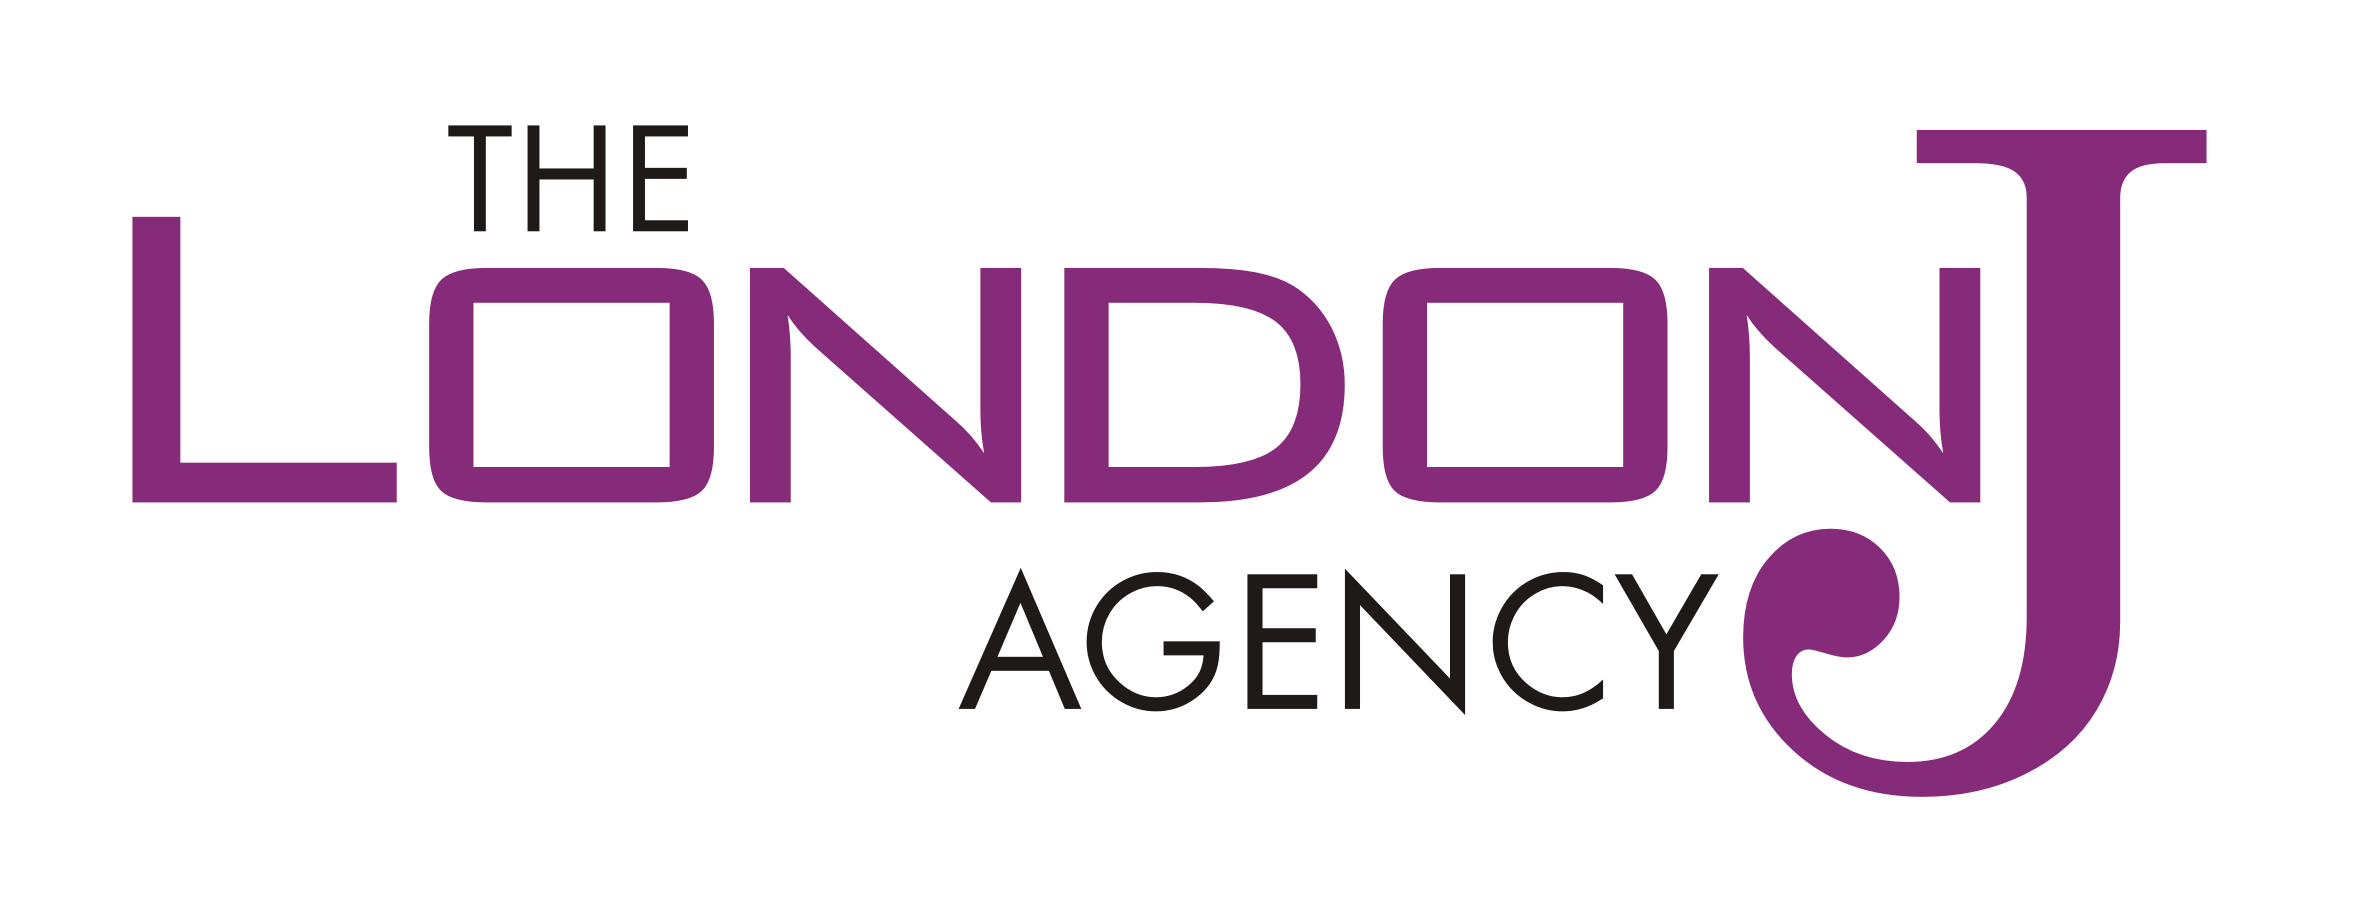 The London J Agency